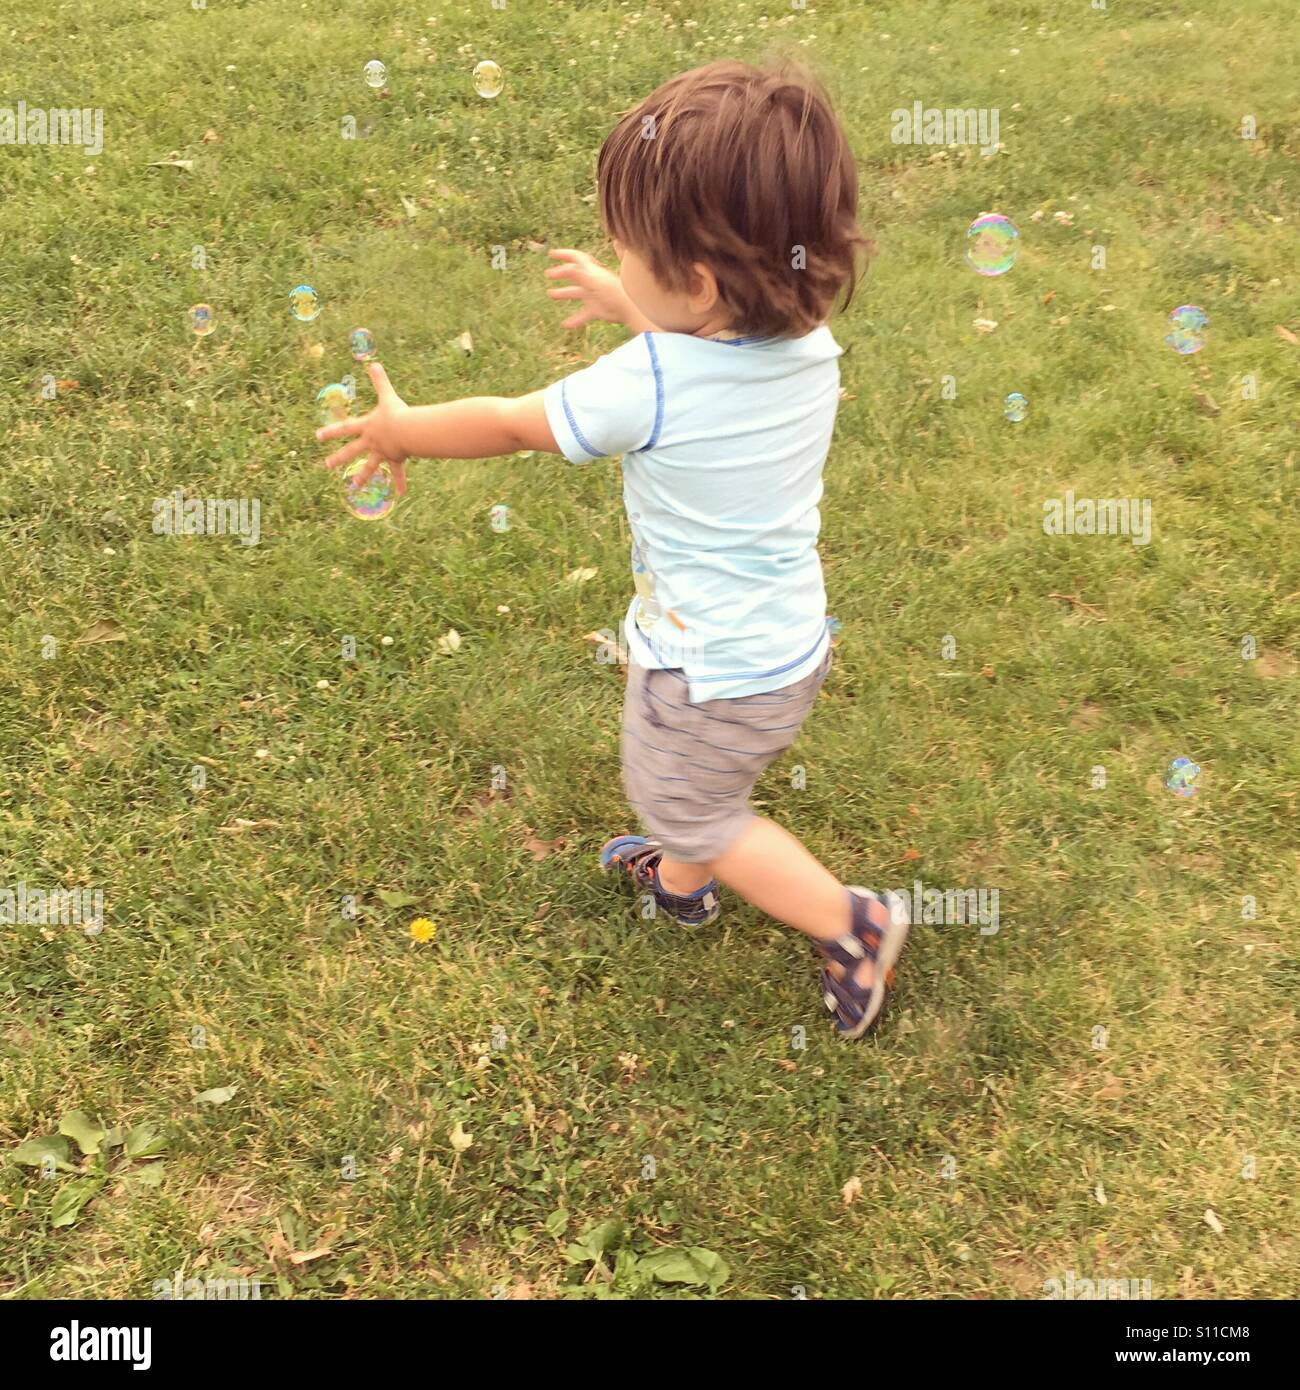 Chasing bubbles - Stock Image